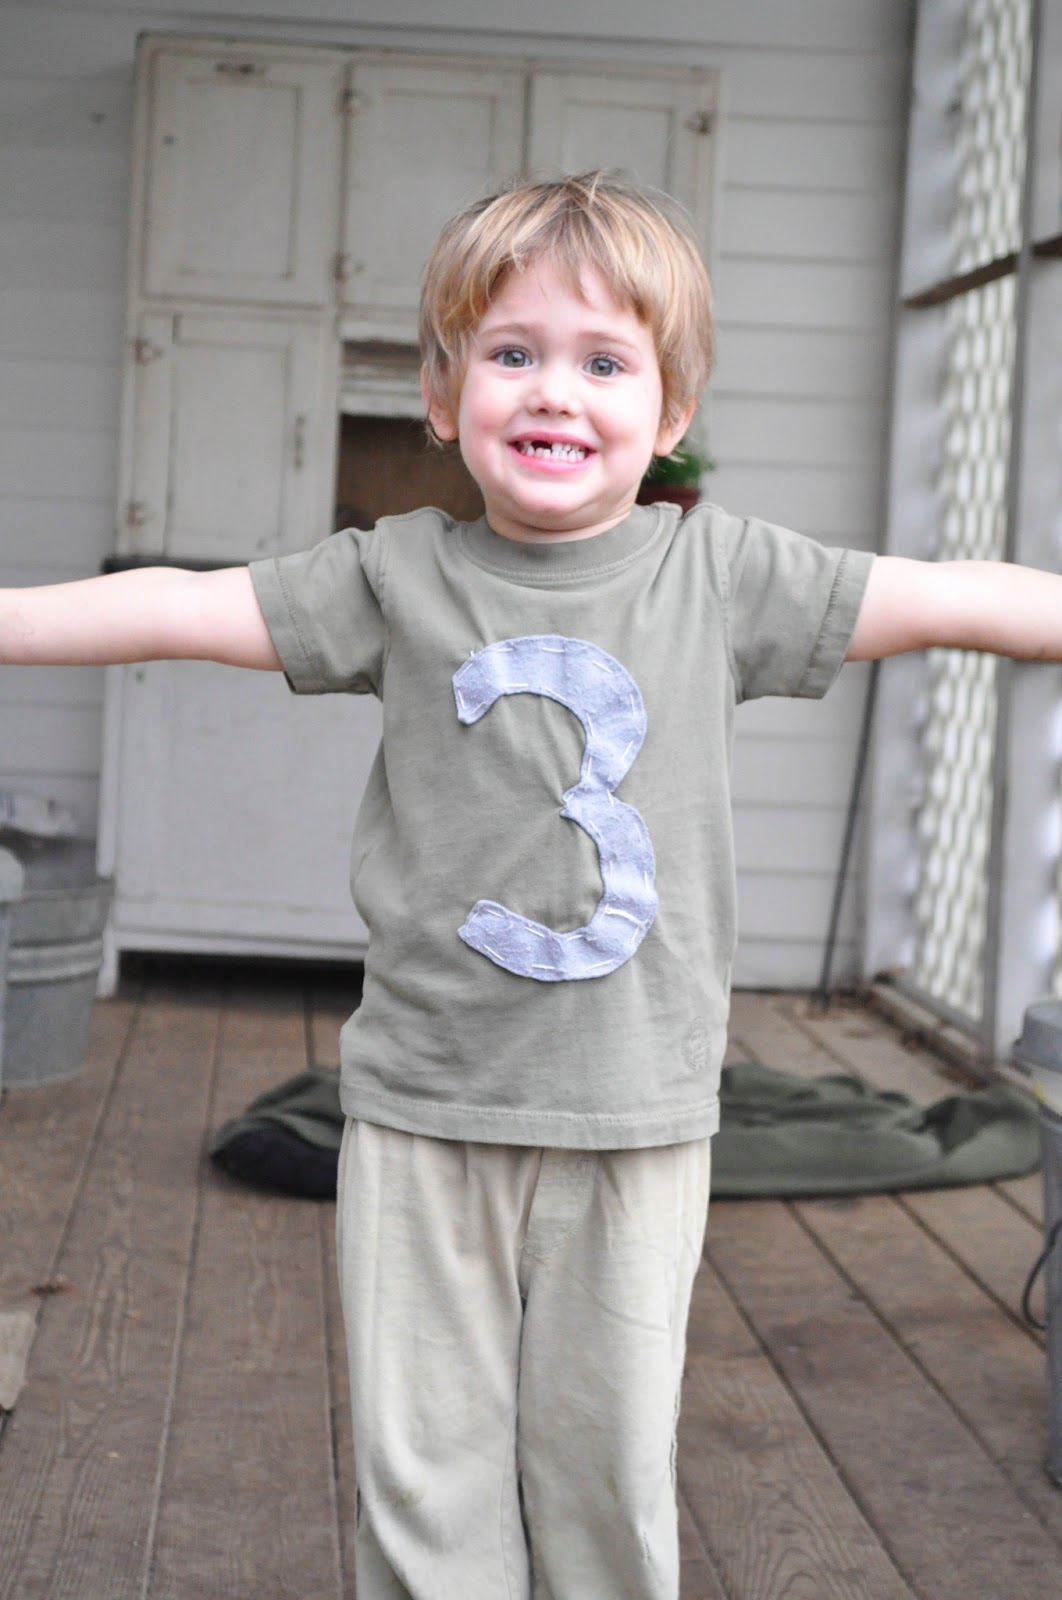 The Supermanns: My 3 Year Old Boy